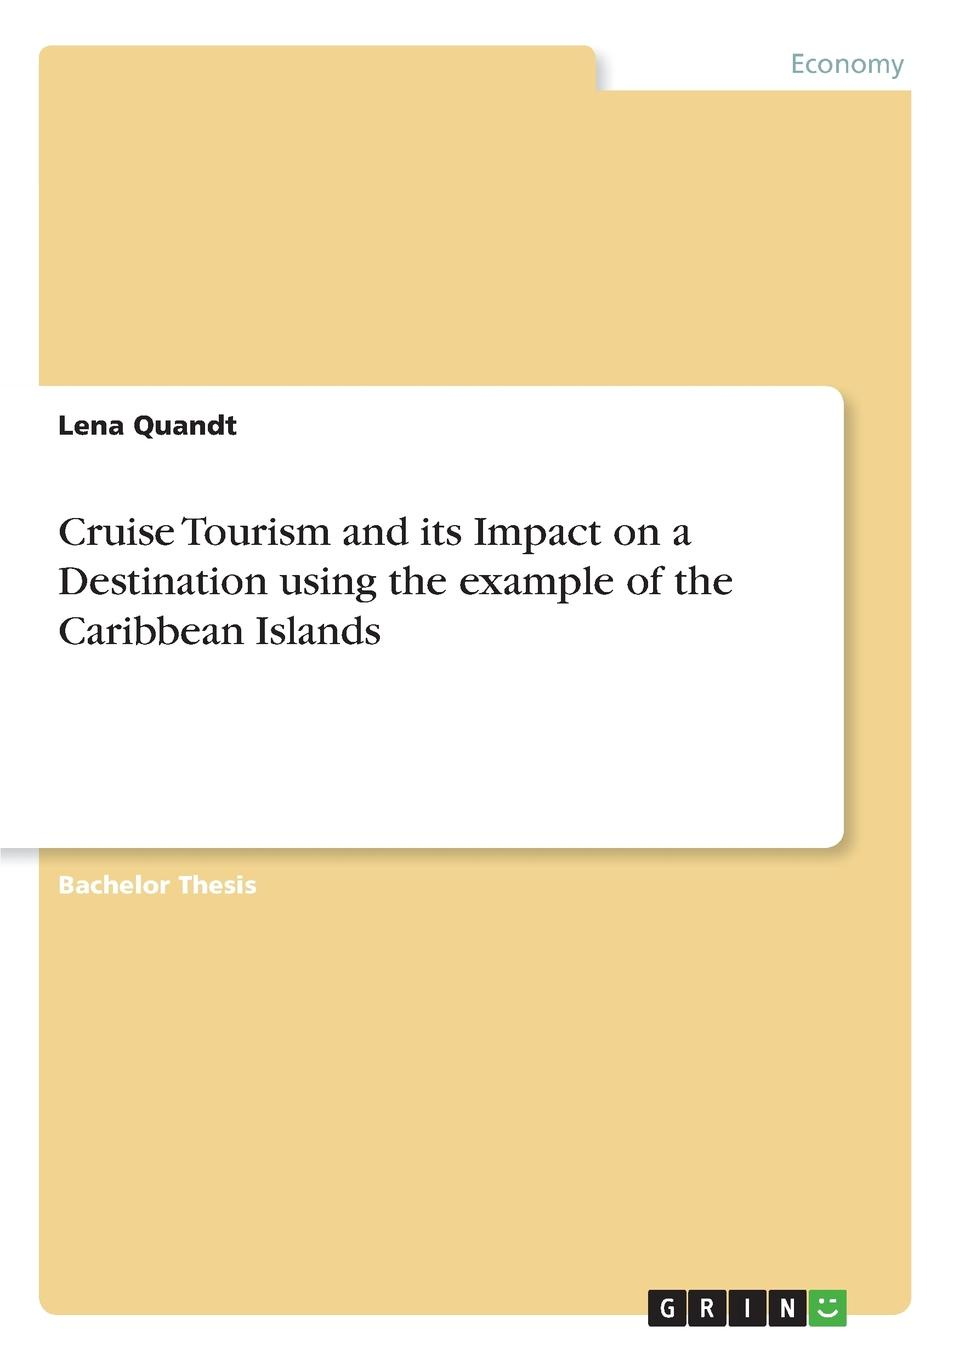 Lena Quandt Cruise Tourism and its Impact on a Destination using the example of the Caribbean Islands